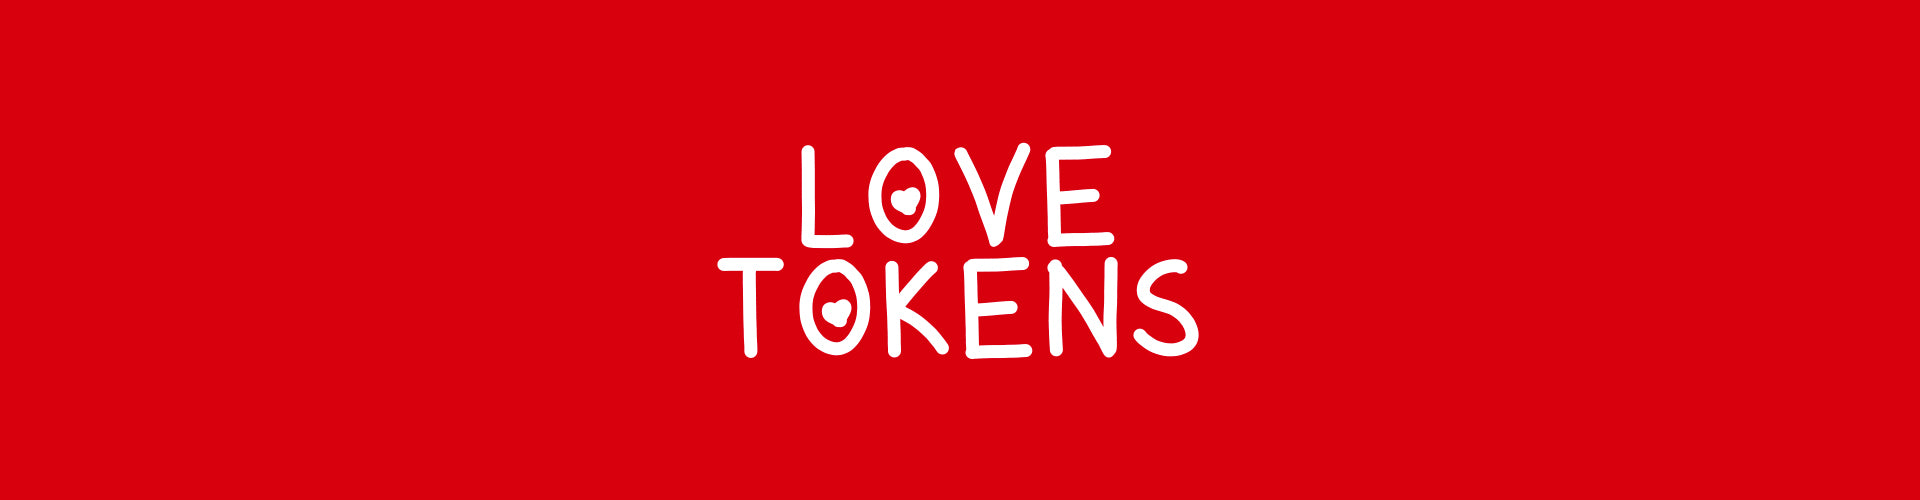 Fall For Love Tokens